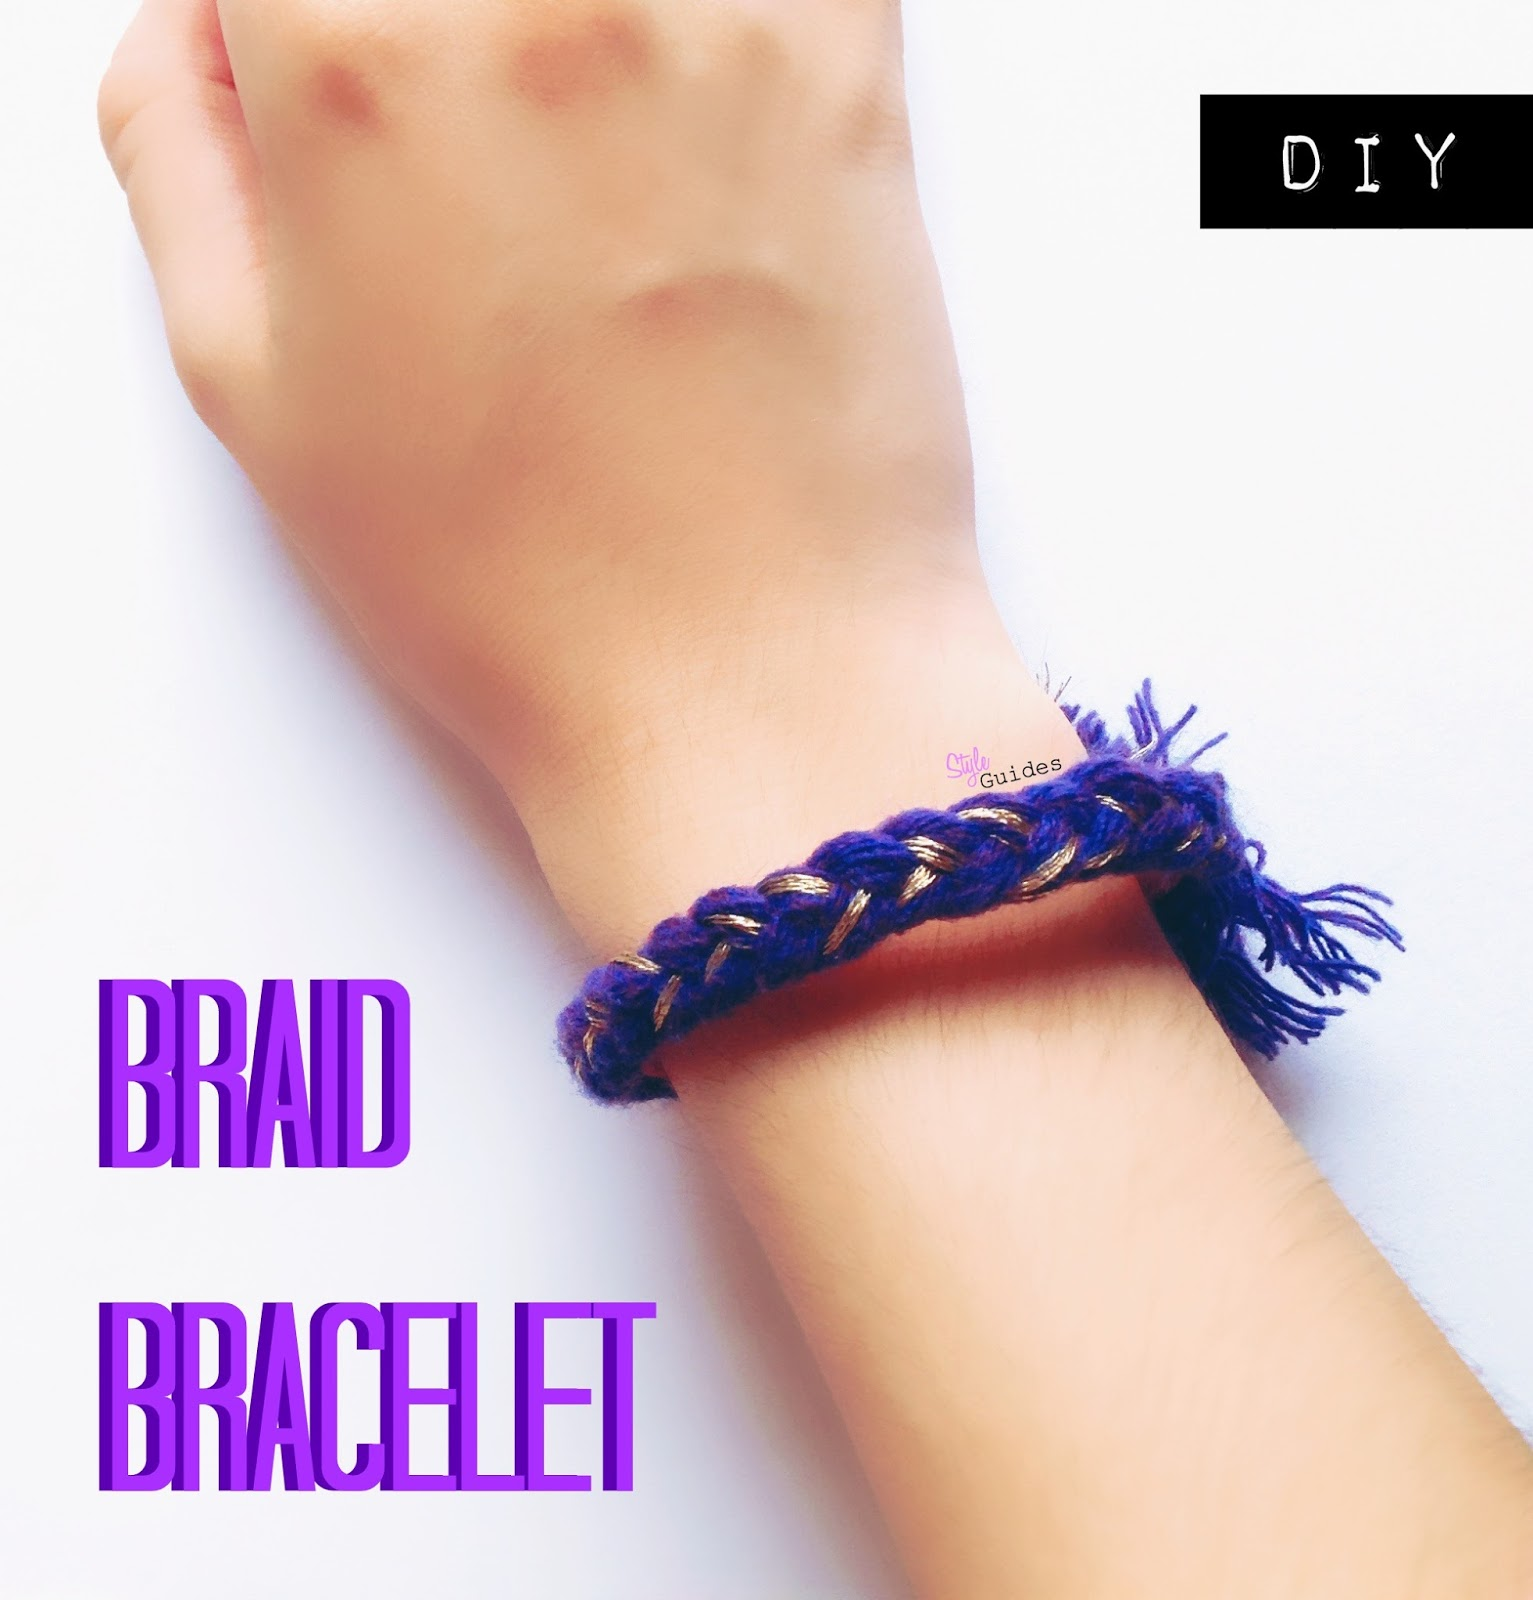 diy bracelet fashion accessories